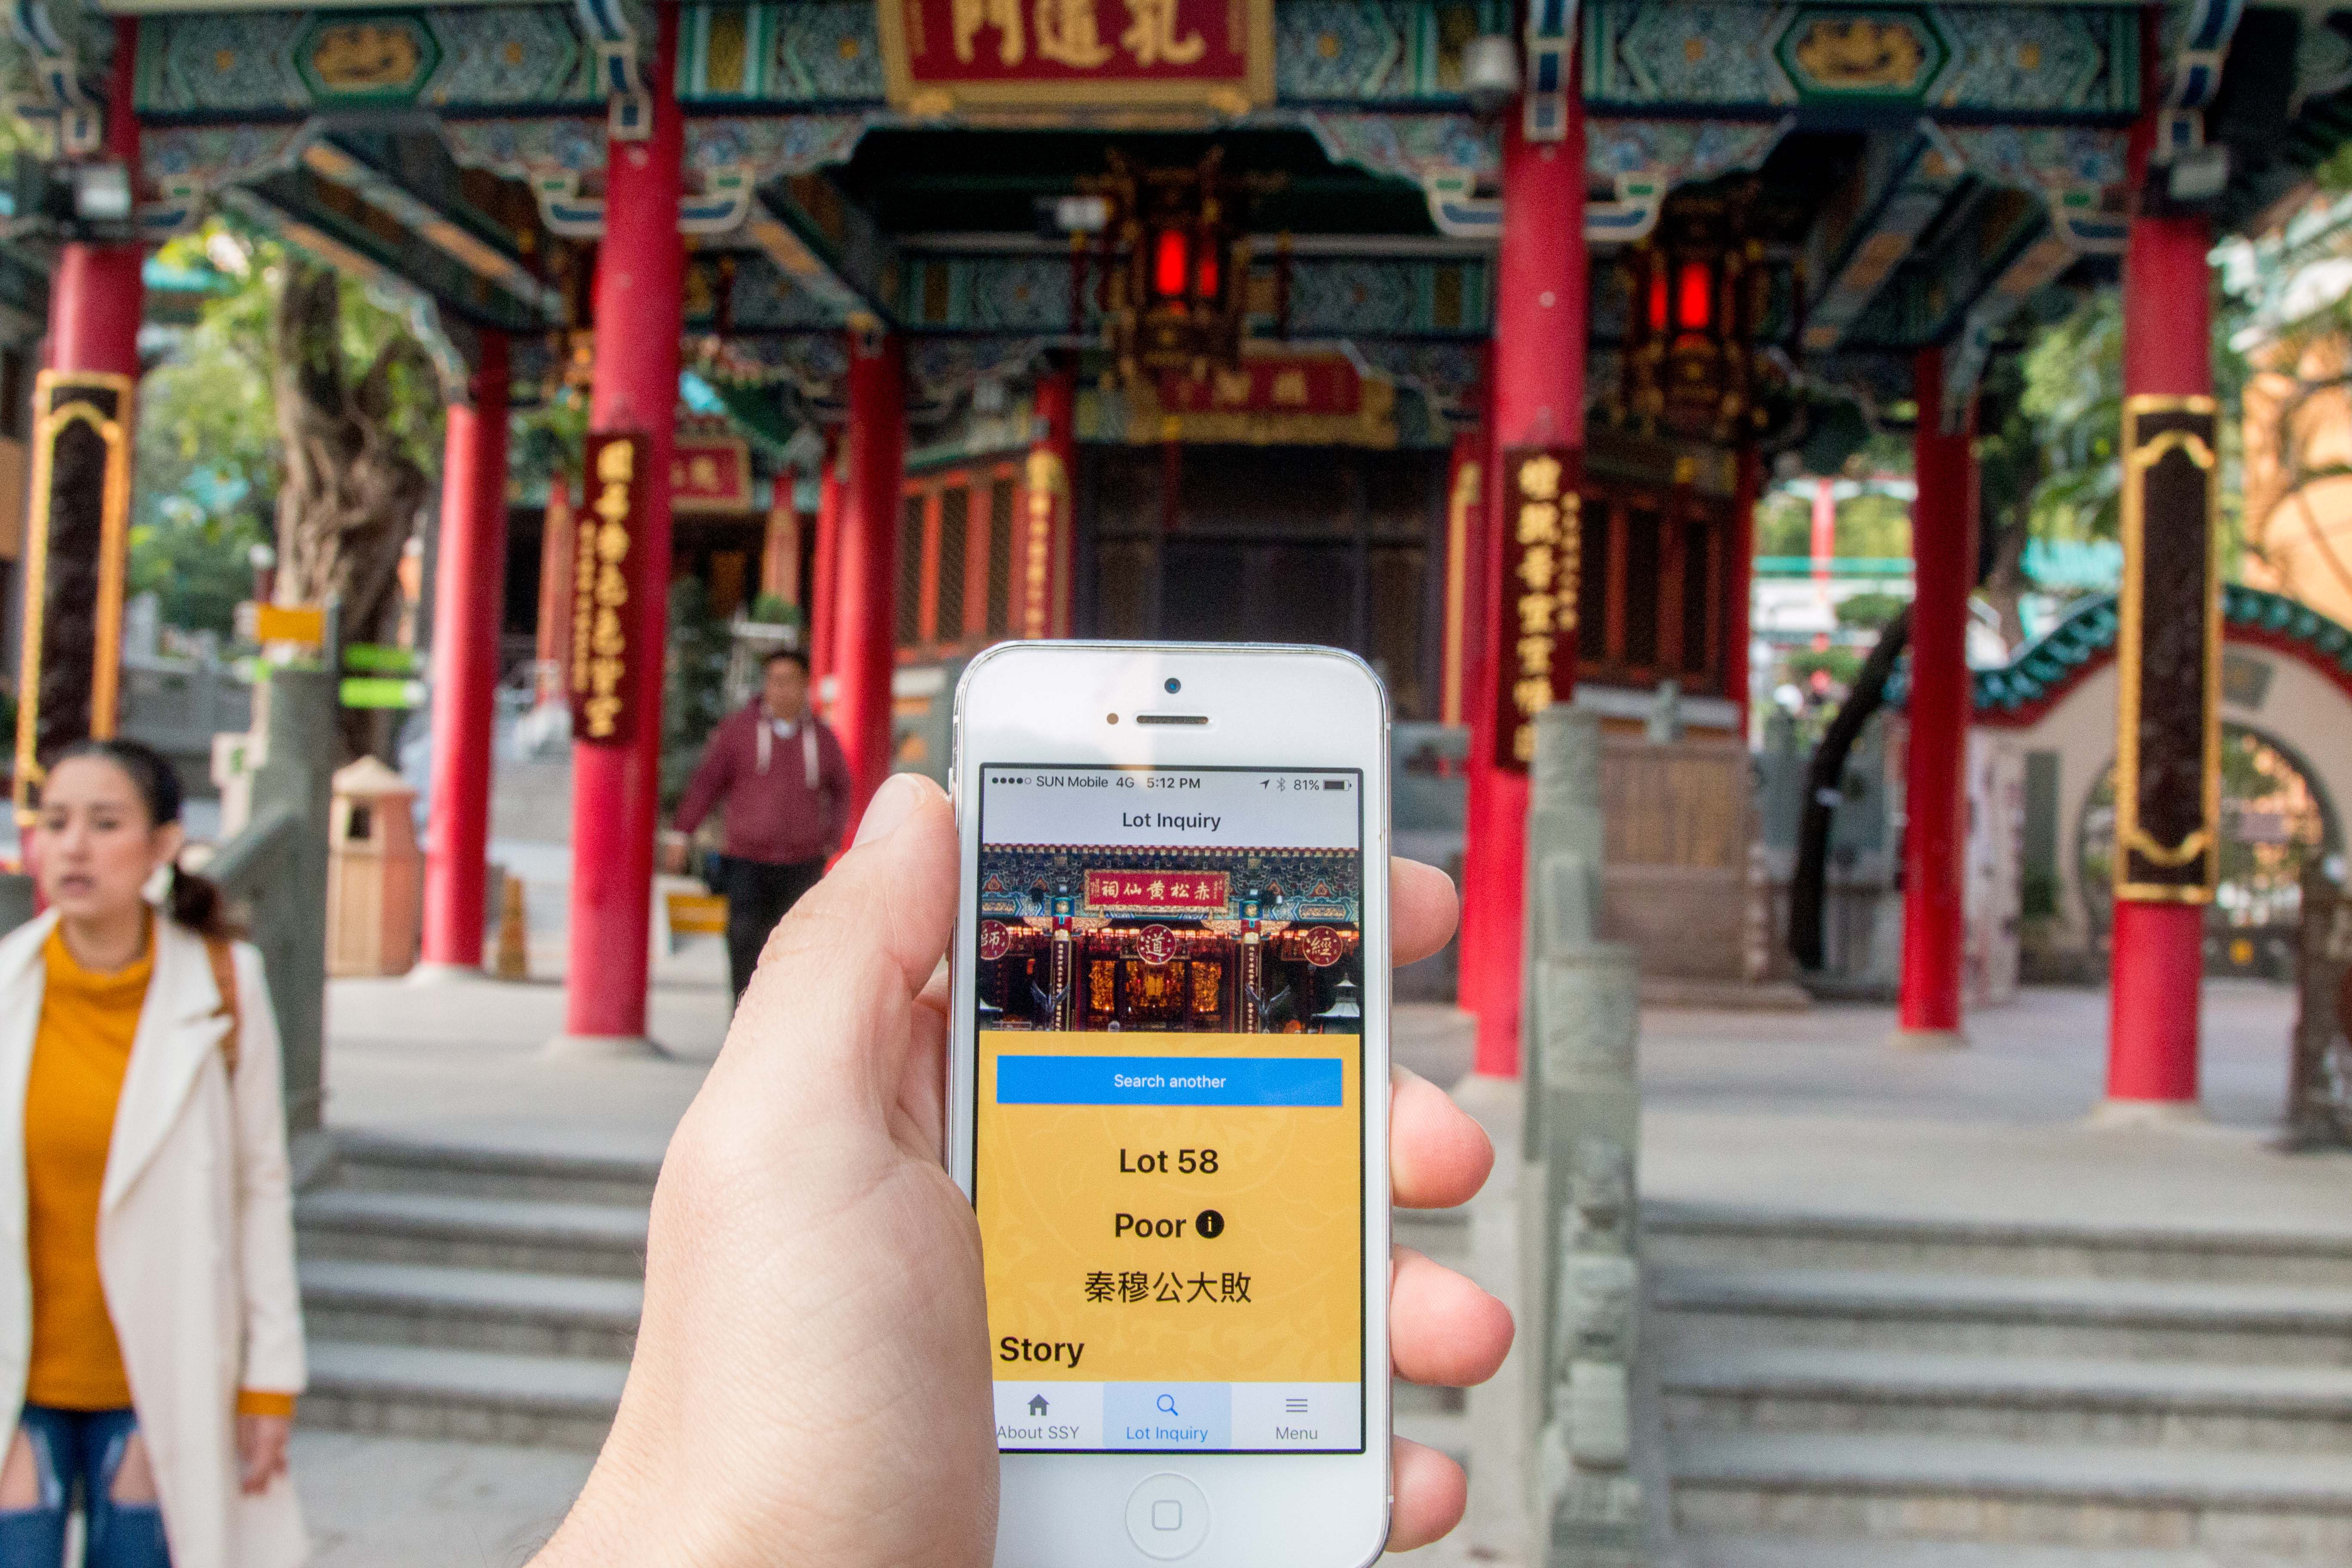 An inauspicious fortune, fetched via the Sik Sik Yuen Wong Tai Sin Temple app.